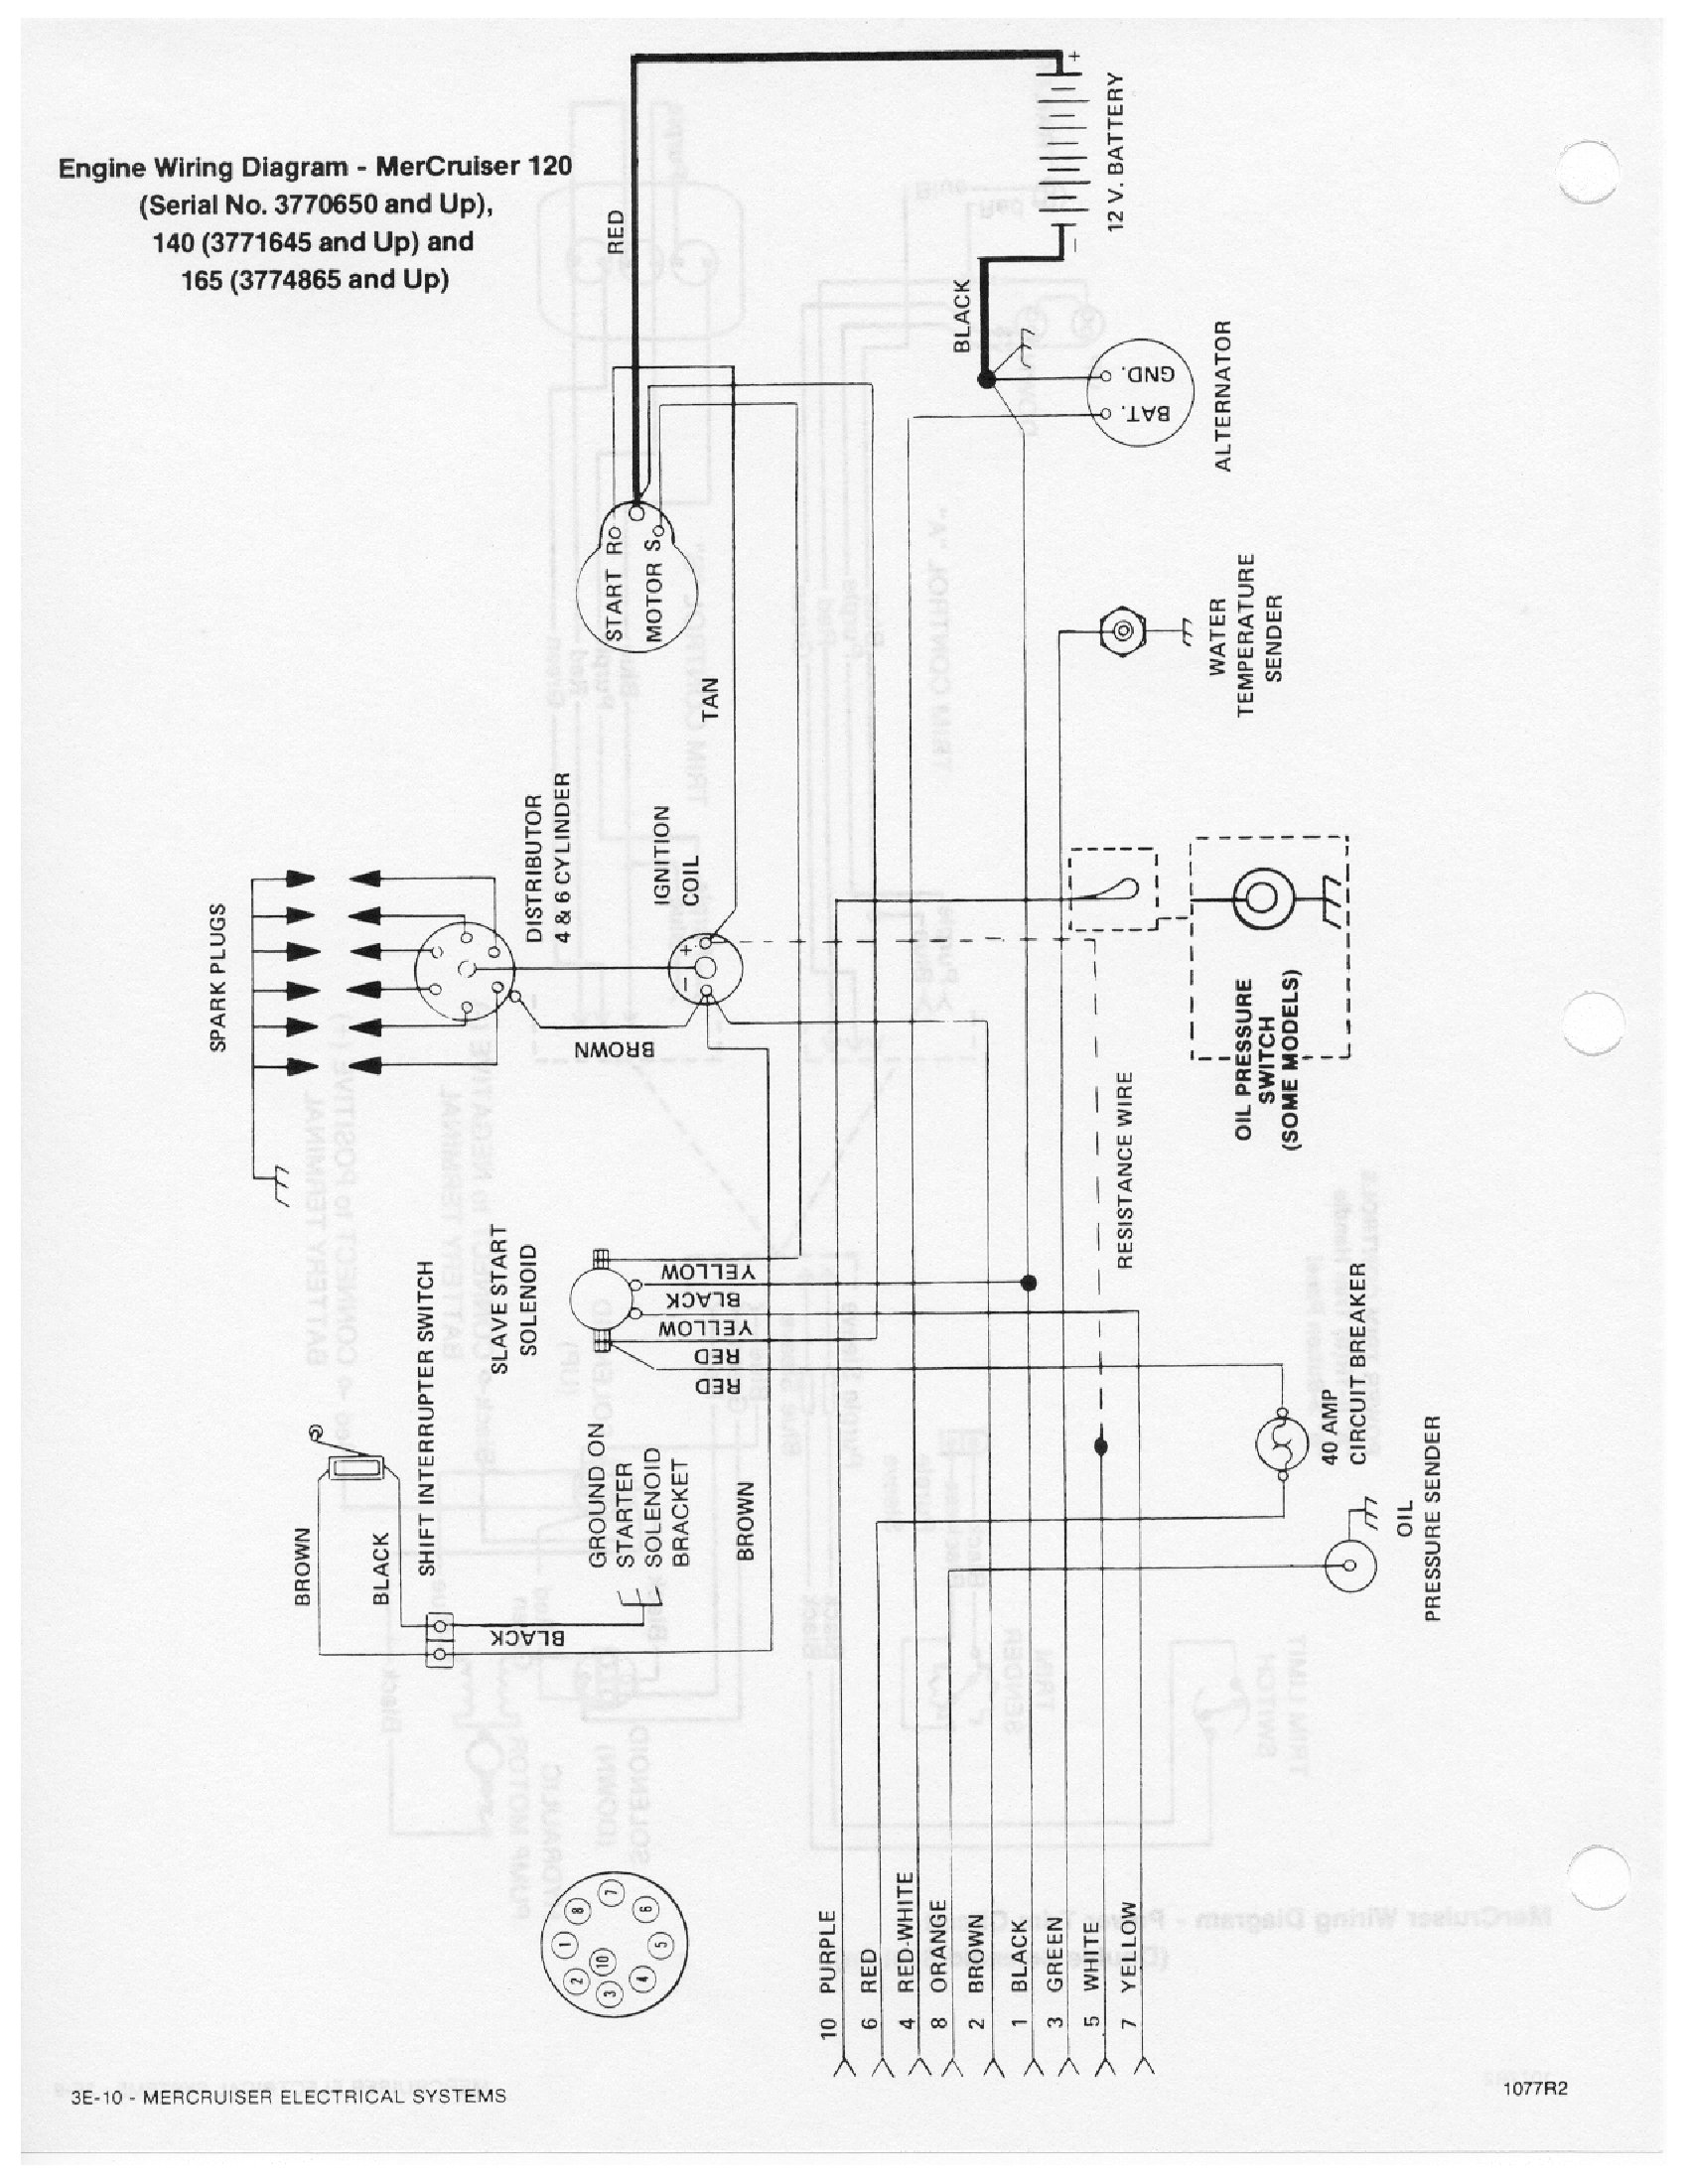 Mercury 175 Engine Diagram Html together with 8 also 70269 Mercedes Benz 190e 2 3 Mercedes Turns Won T additionally Mercedes W124 300e Engine Wiring Harness moreover Electric. on 1985 mercedes benz fuse box diagram